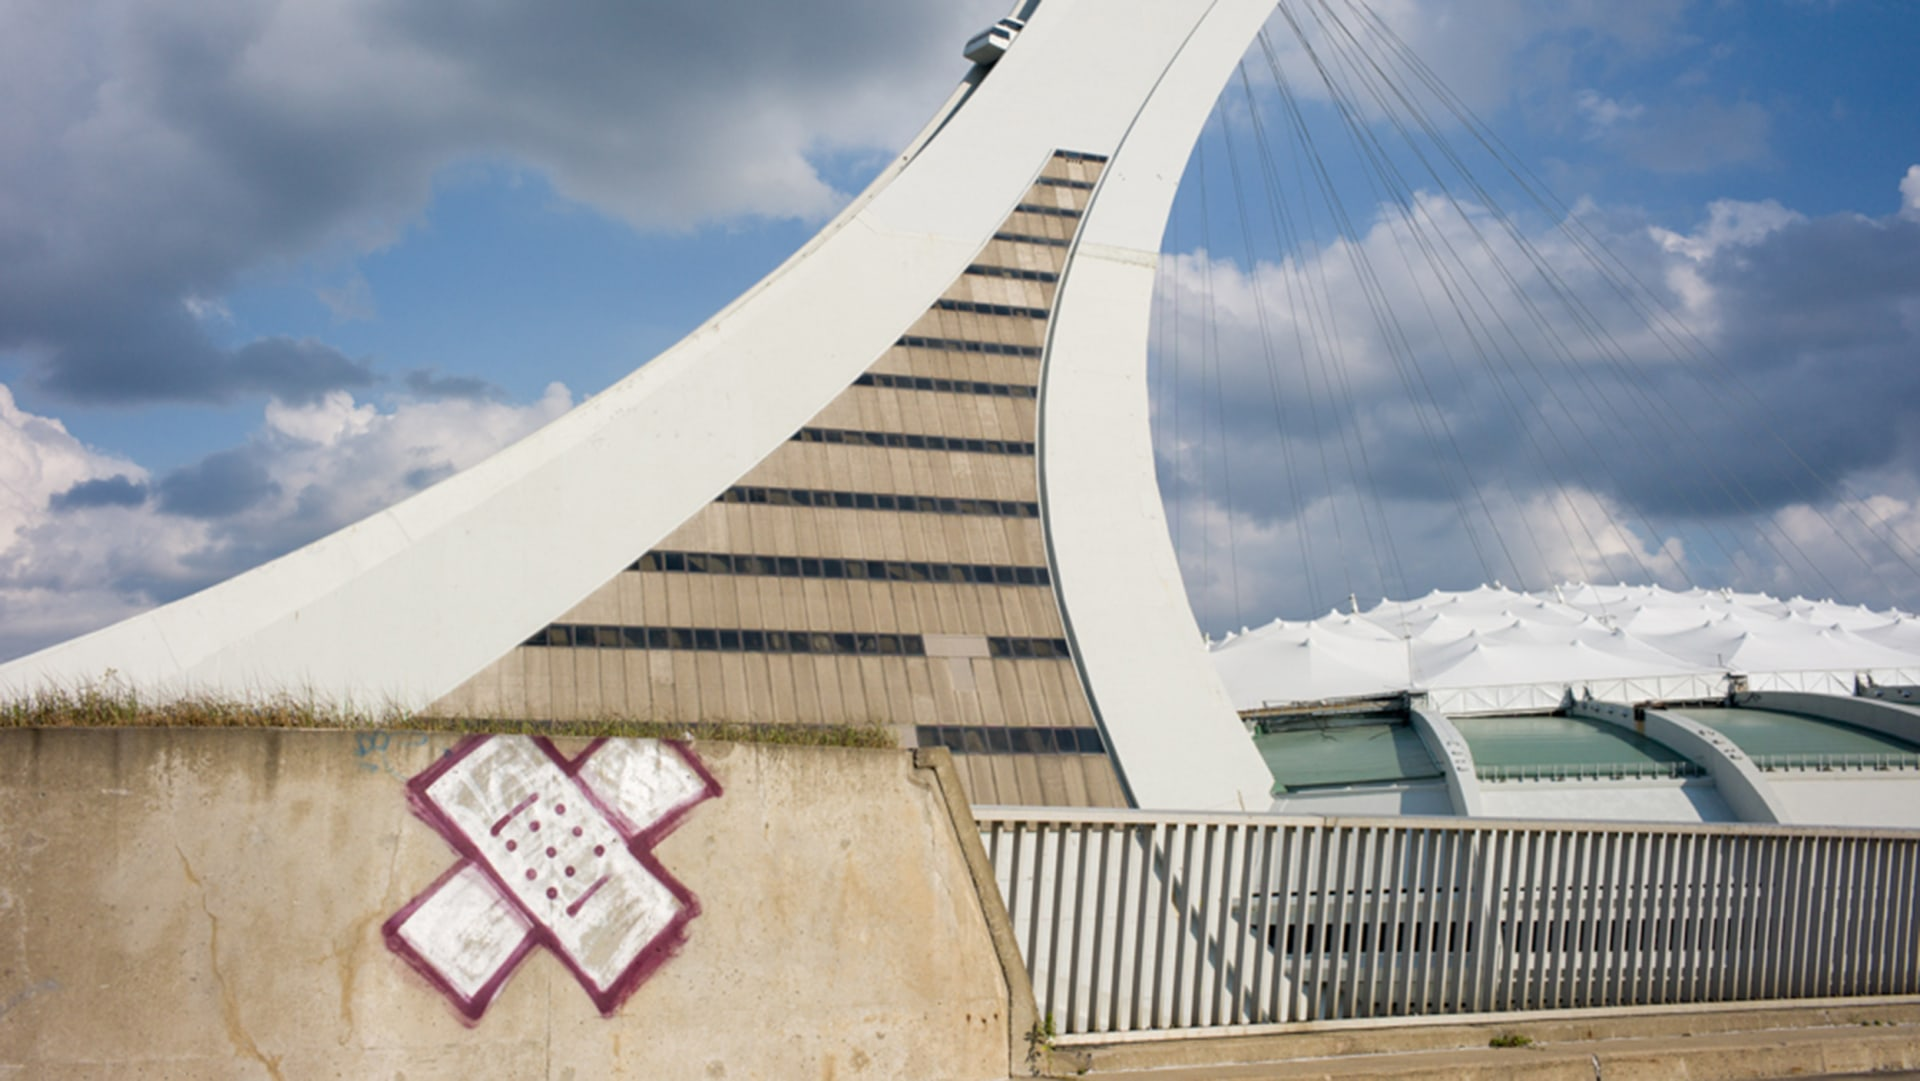 Locations Of Olympic Venues Today Olympic Stadium Of Past Today Ss Slide